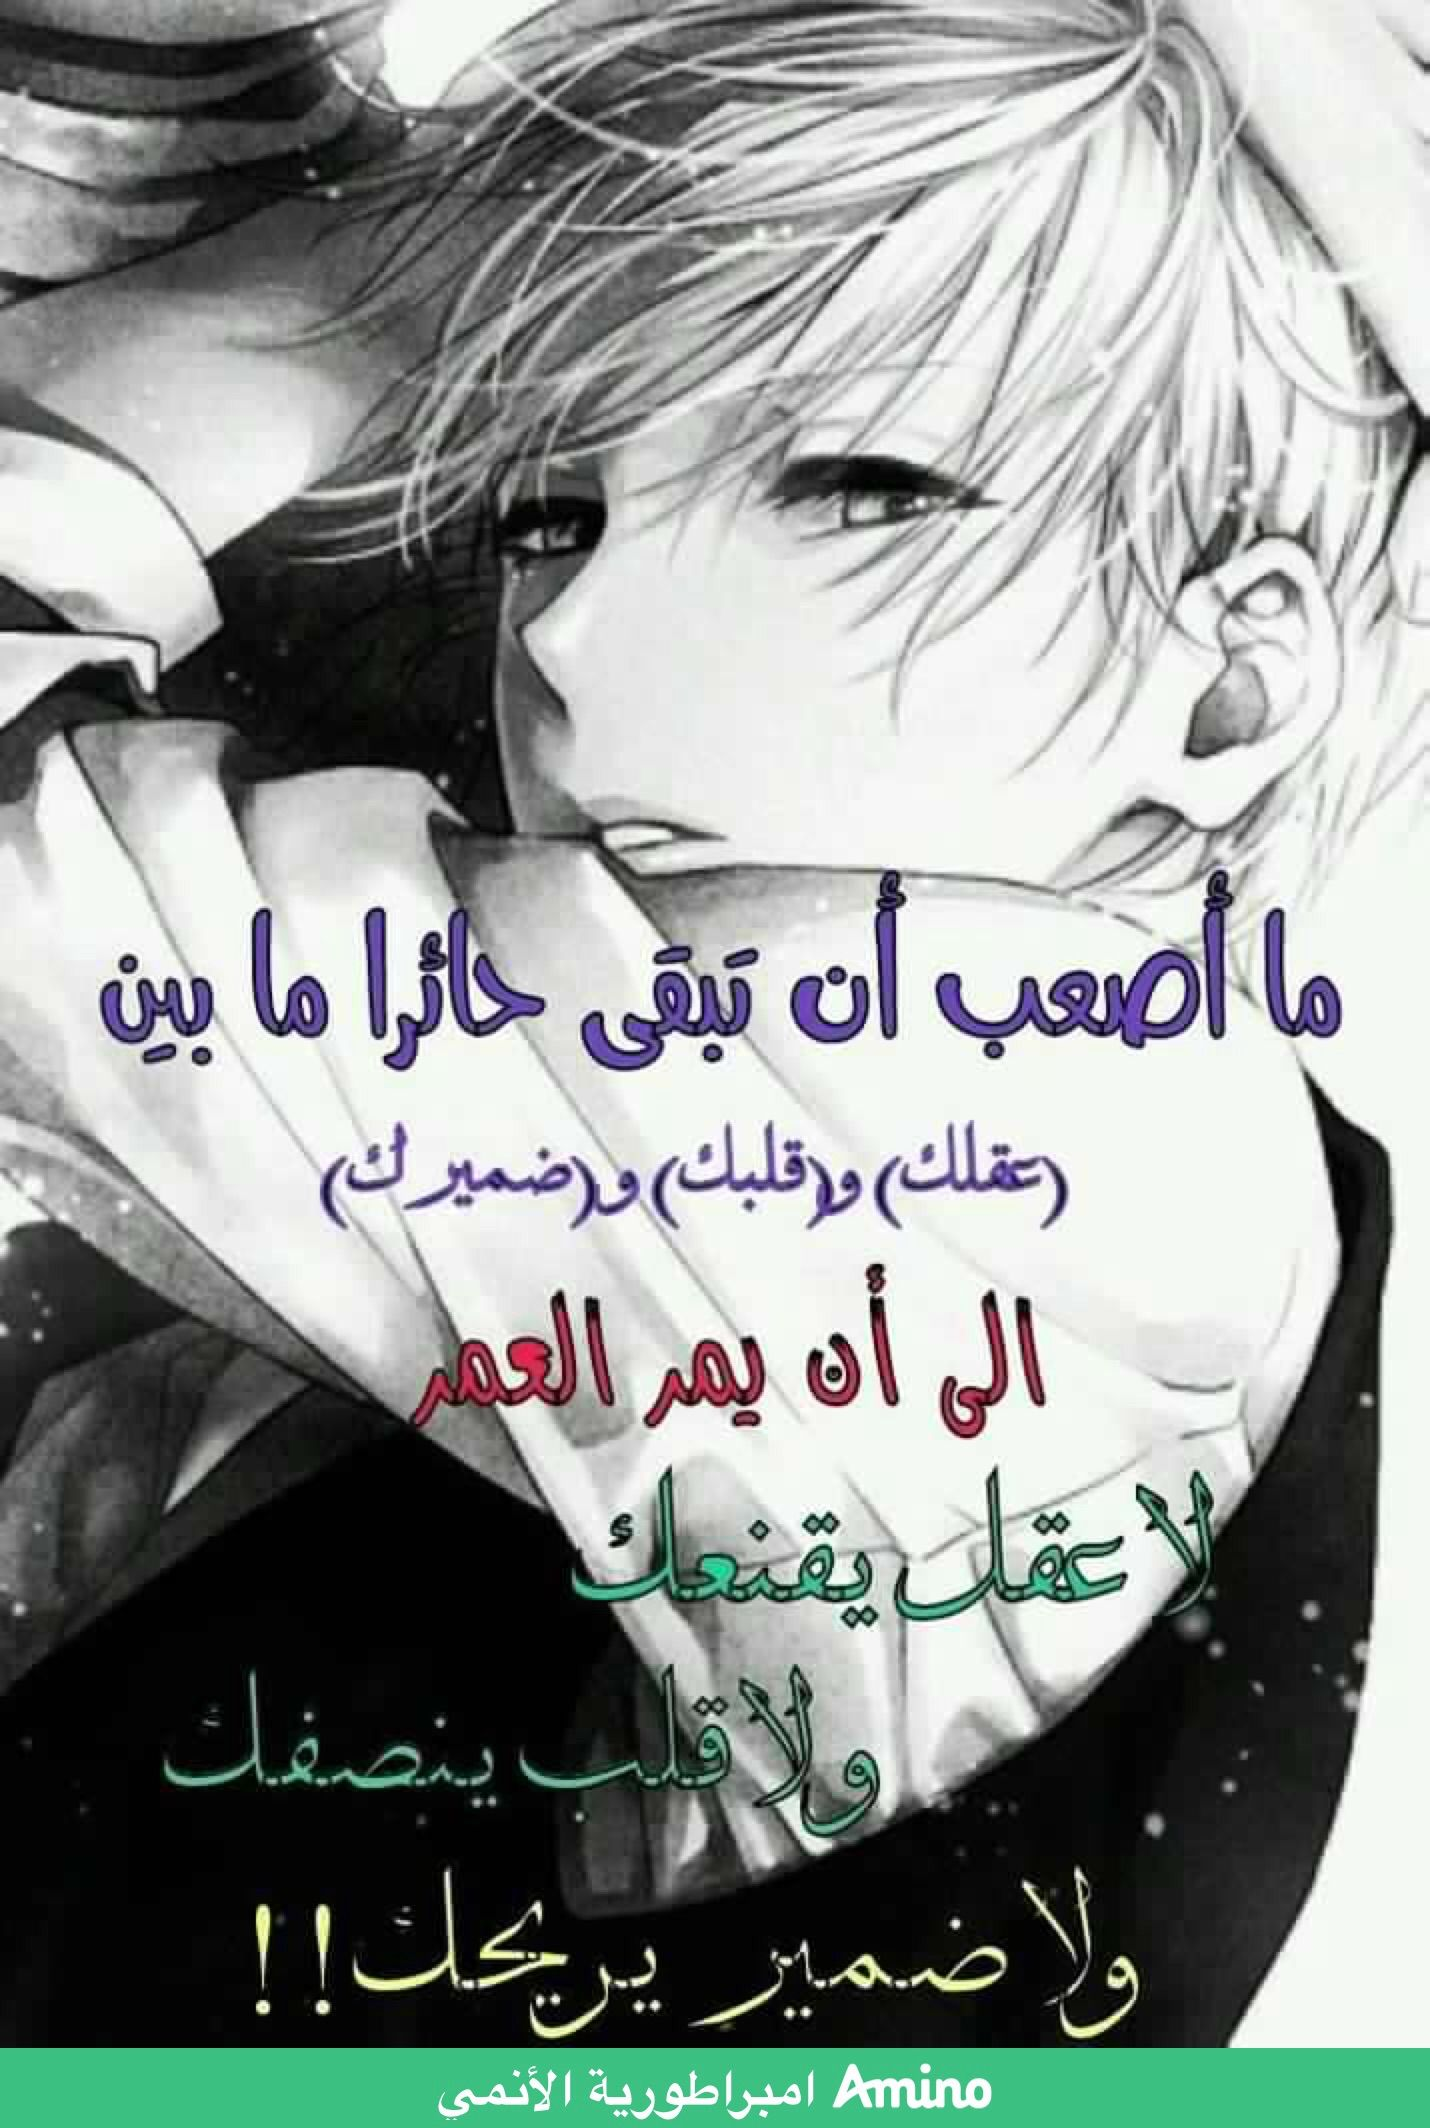 Pin By Mero K On Code Geass Anime Quotes Beautiful Arabic Words Anime Crying